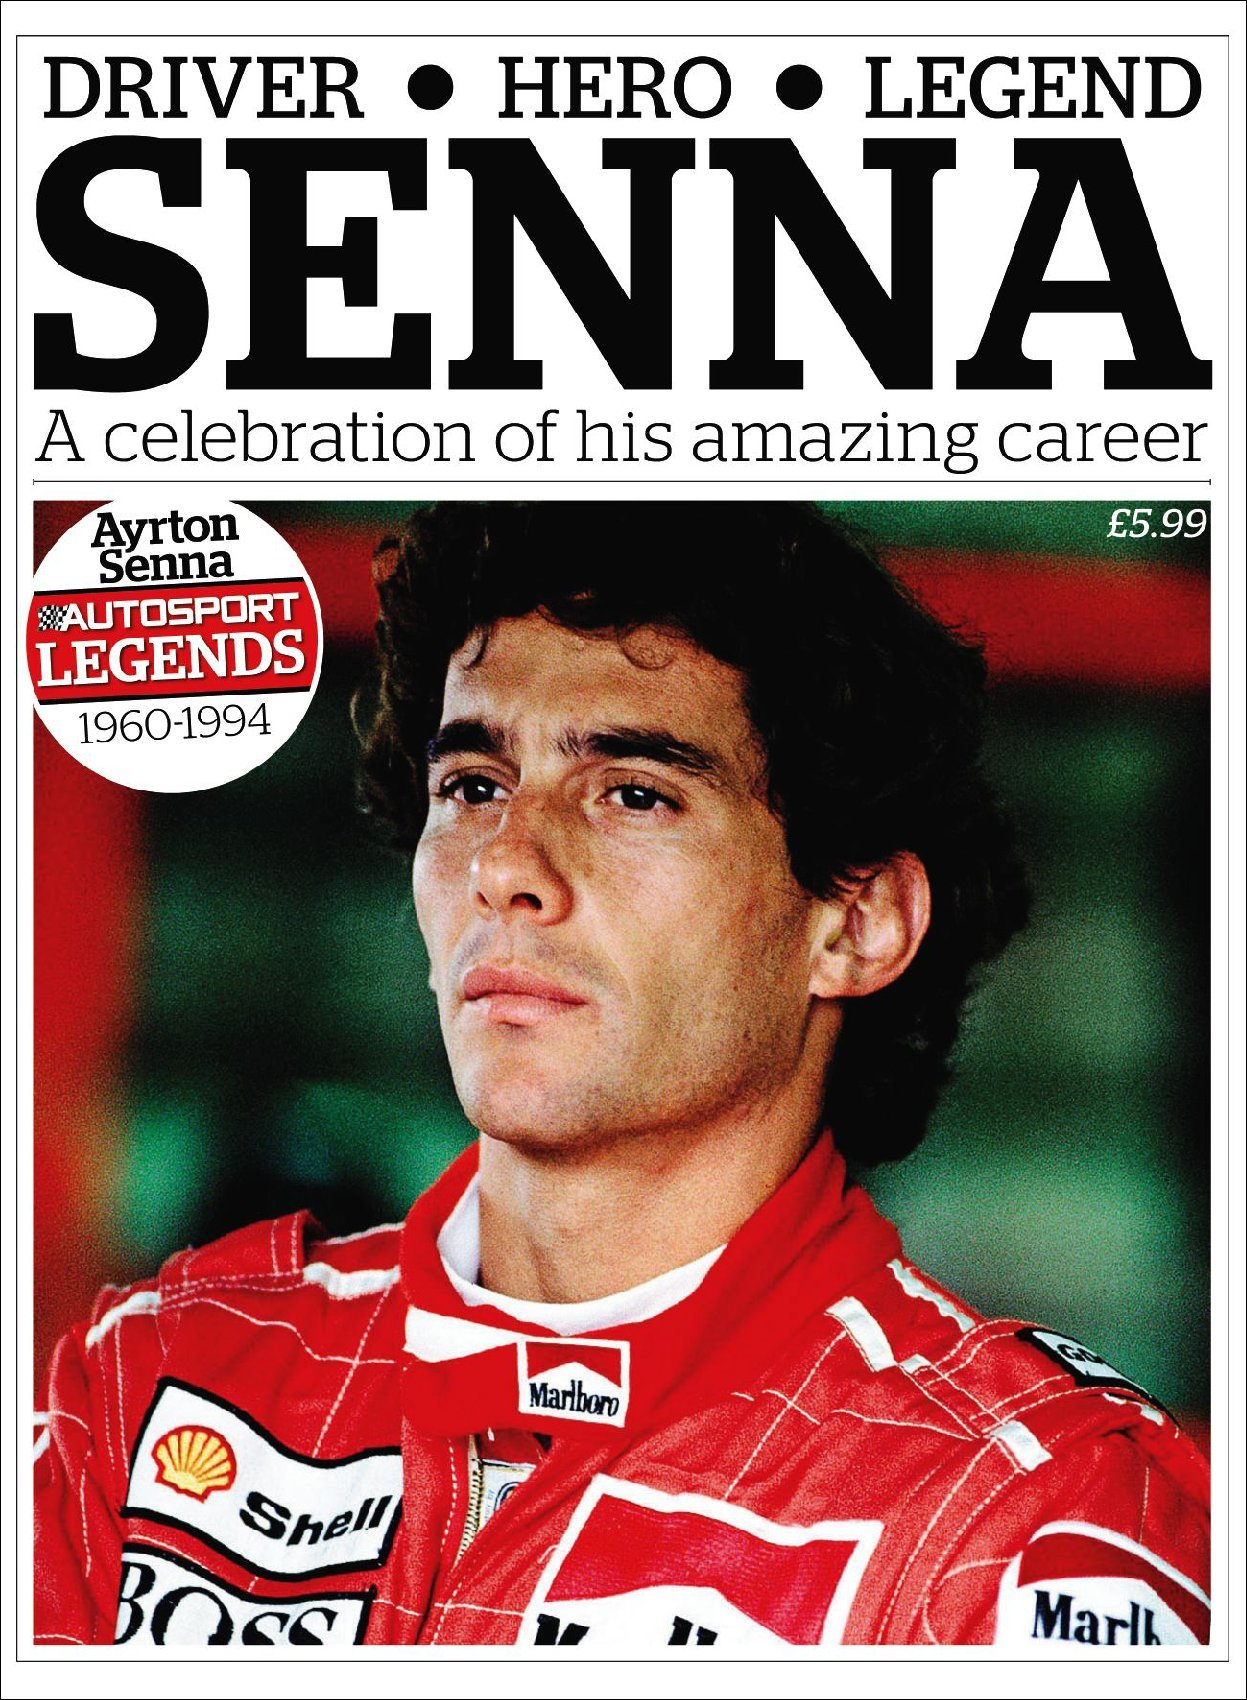 Autosport LegendsAyrton Senna Digital